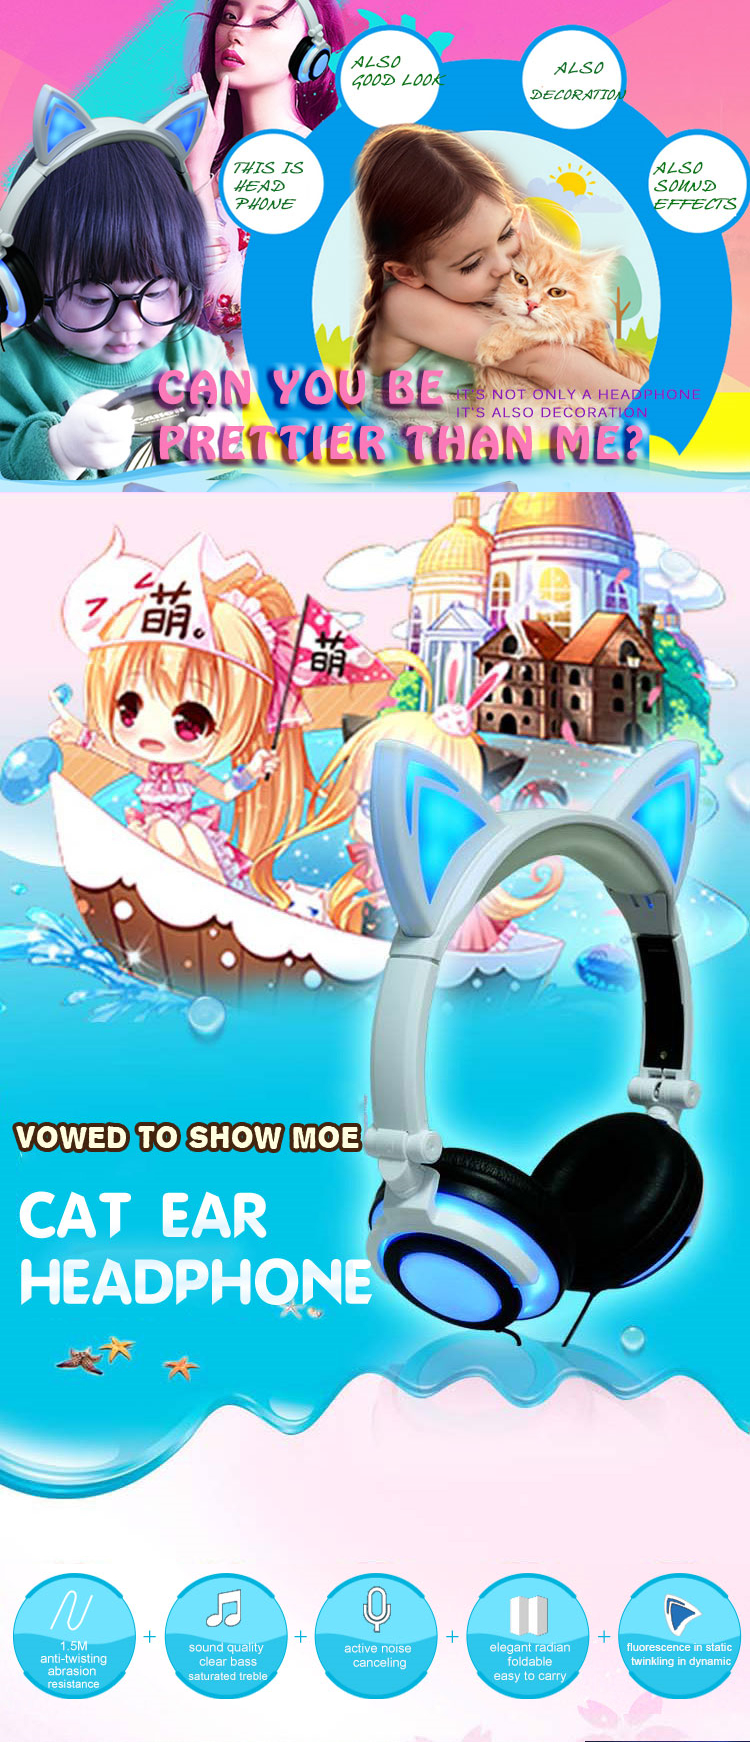 headphone cat